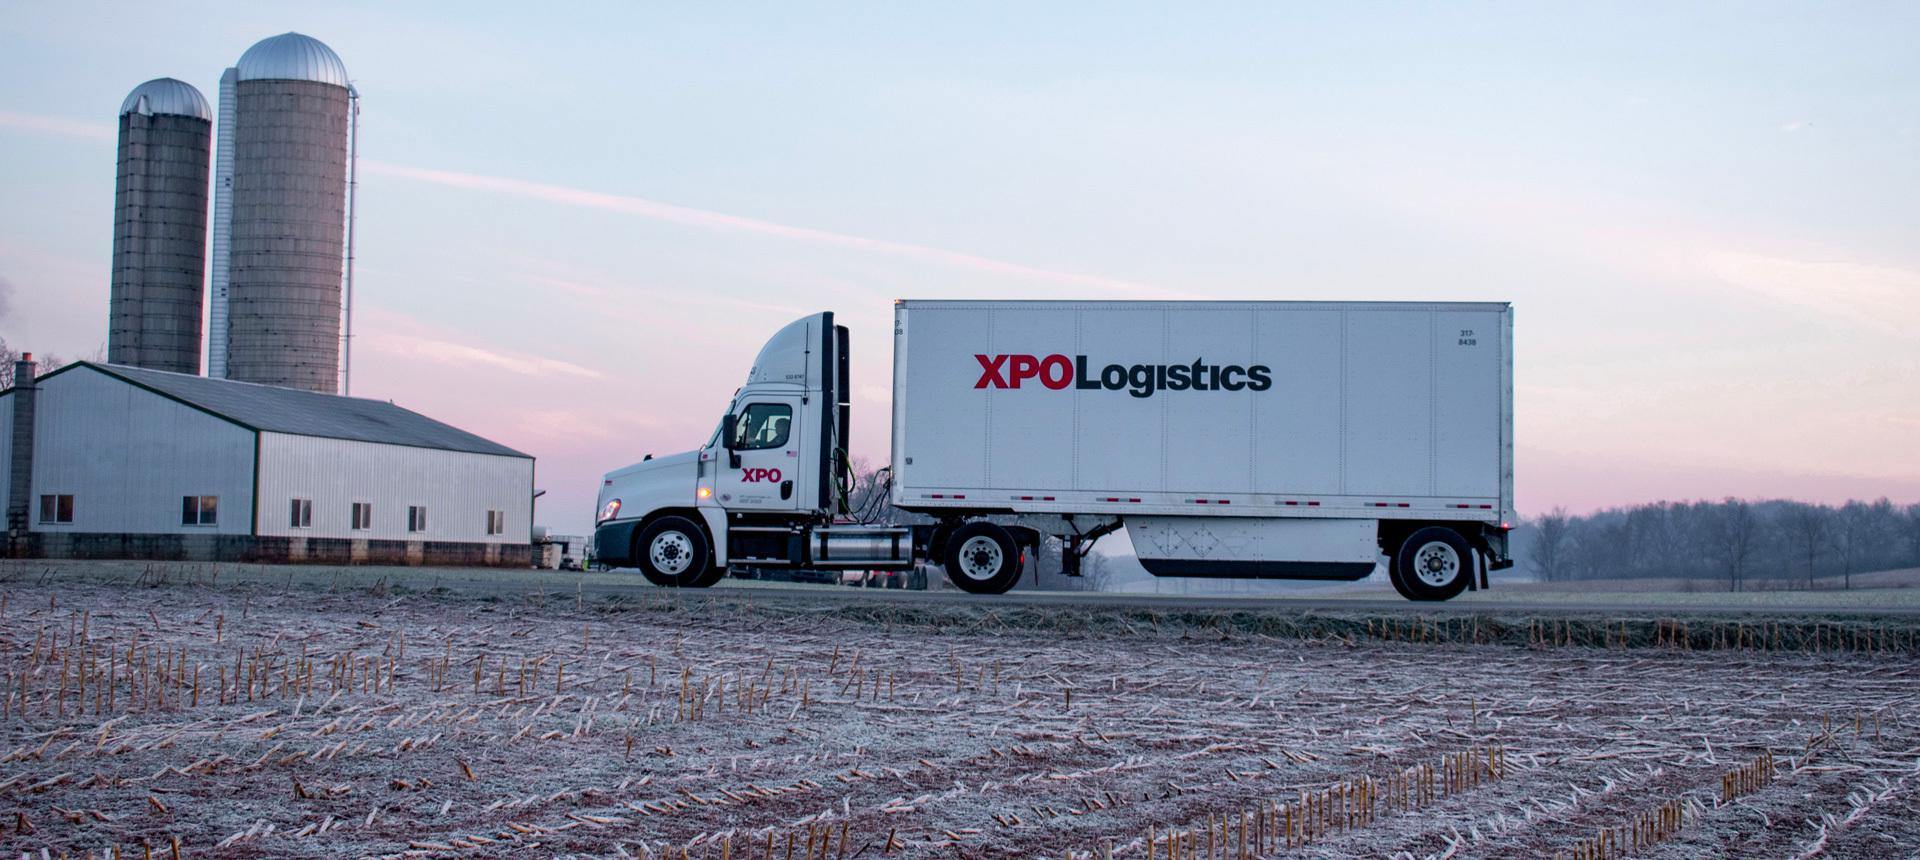 XPO truck on farm